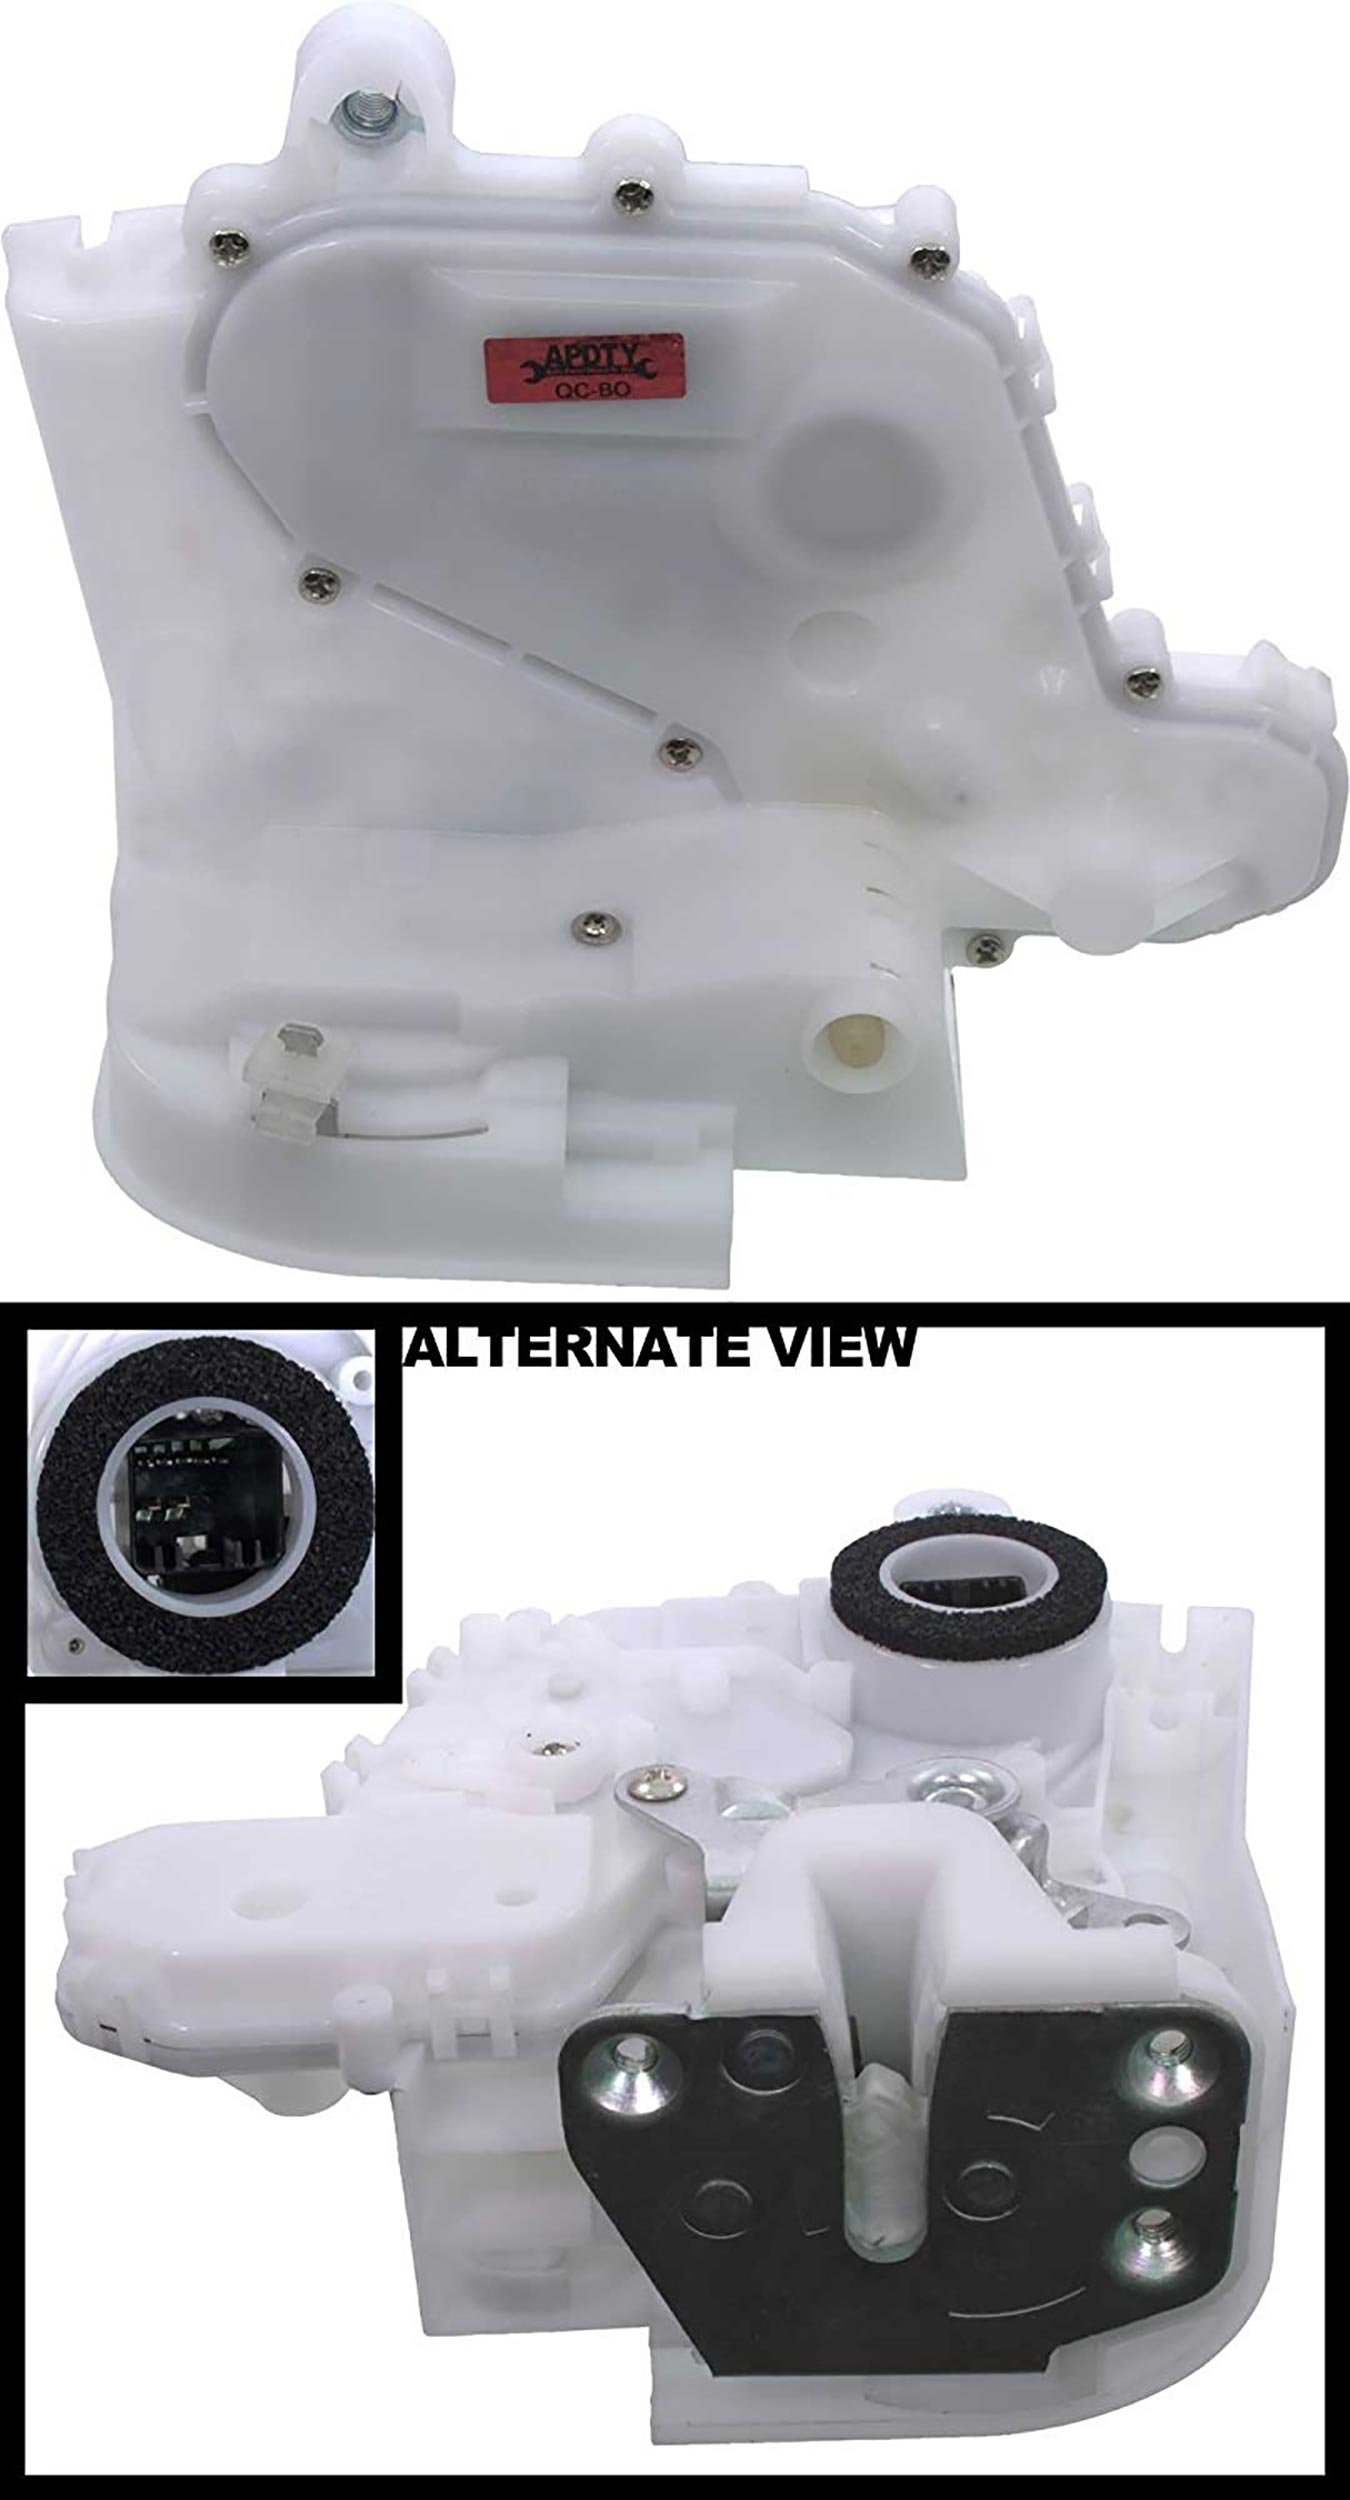 APDTY 133859 Door Latch With Lock Actuator Motor Fits Front Right Passenger-Side 2007-2011 Honda CRV CR-V (Replaces 72110-SWA-D01, 72110-SWA-A01, 72110SWAD01)